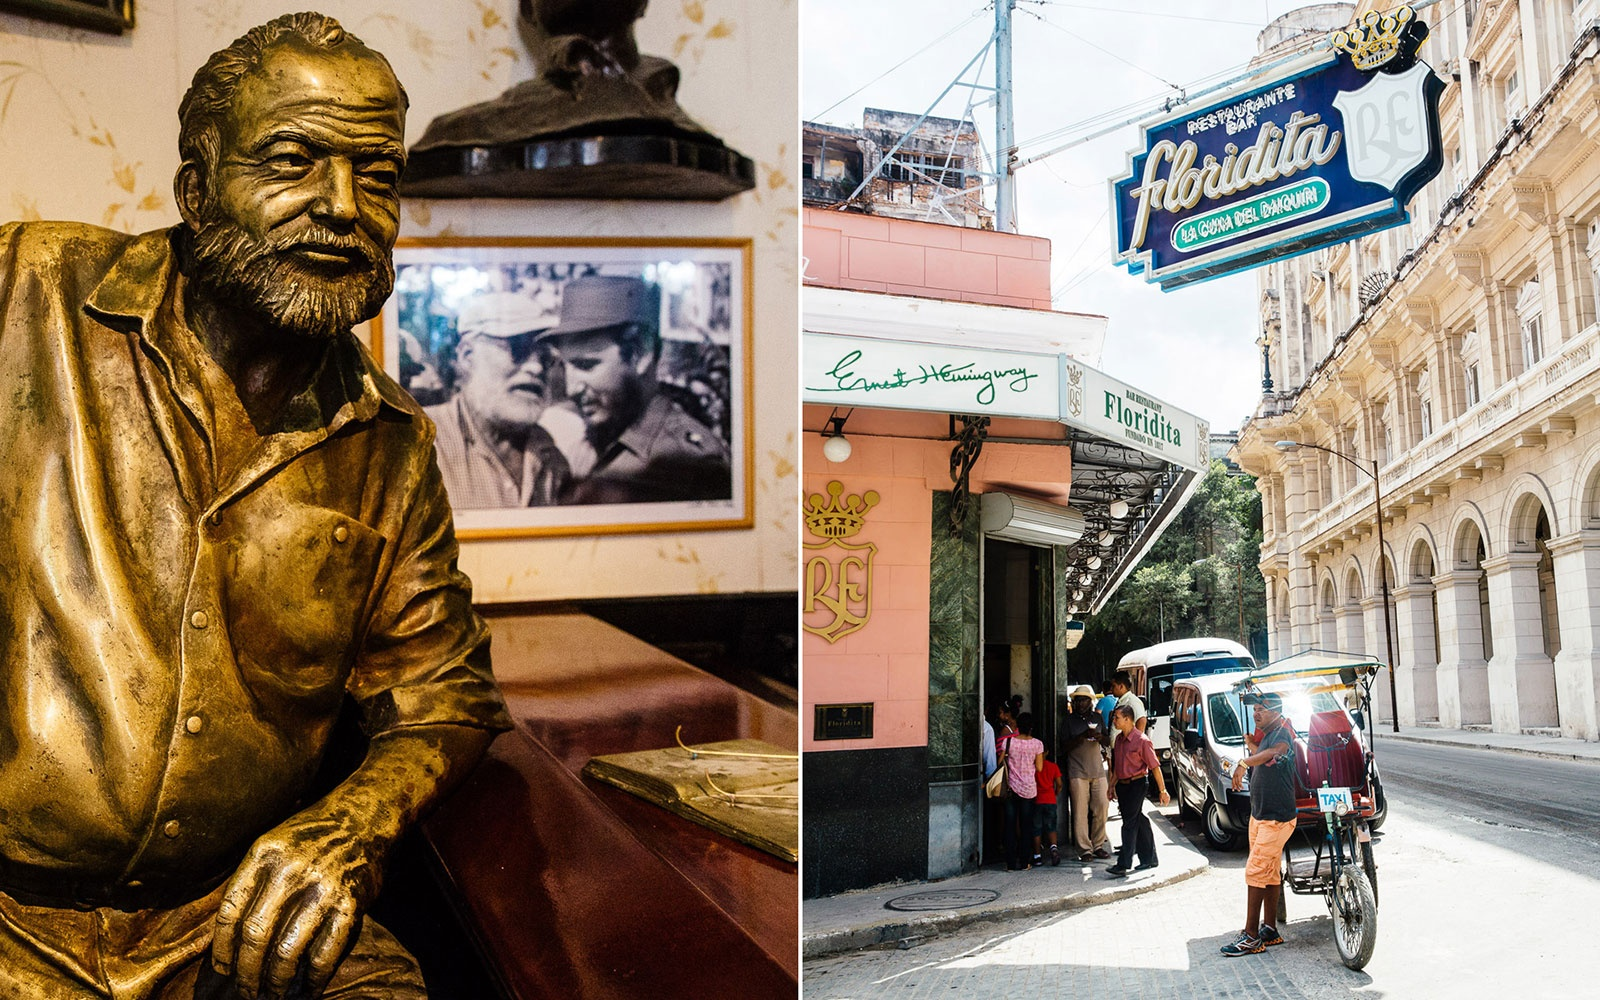 In Havana: Raise a Glass to Papa Hemingway